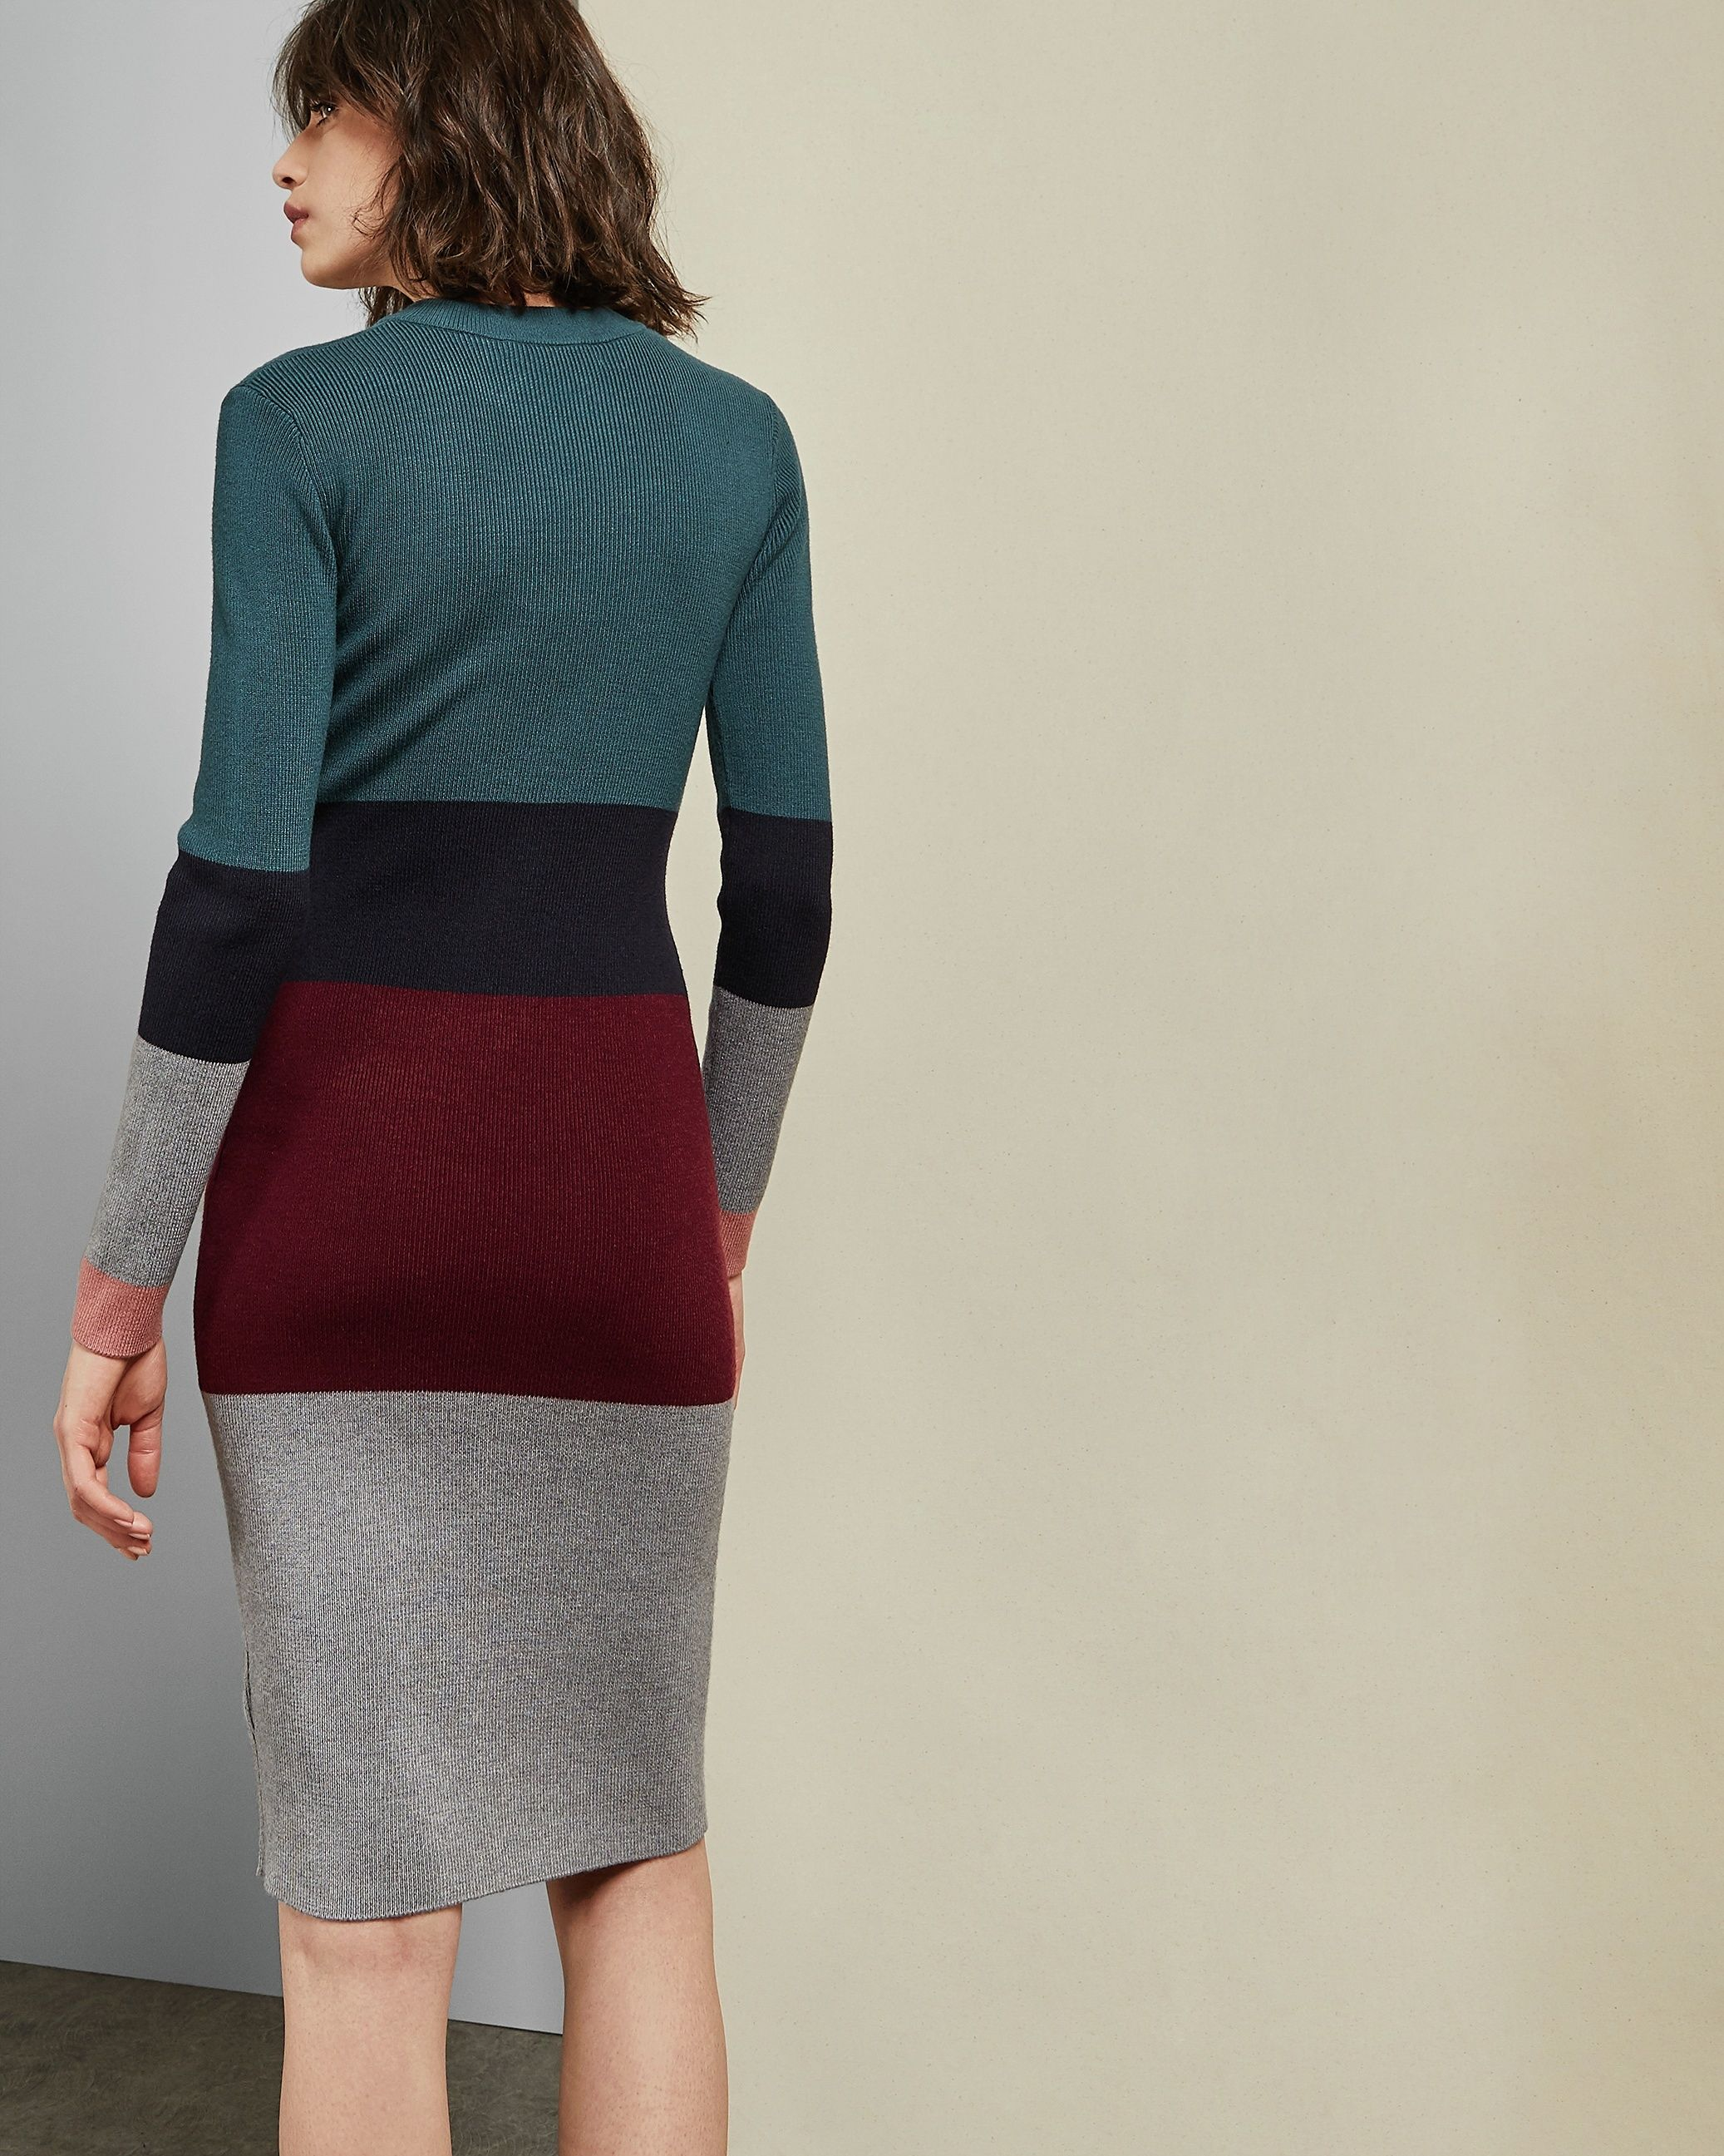 Ted Baker Franae Cabin Ribbed Knitted Dress in Teal Blue